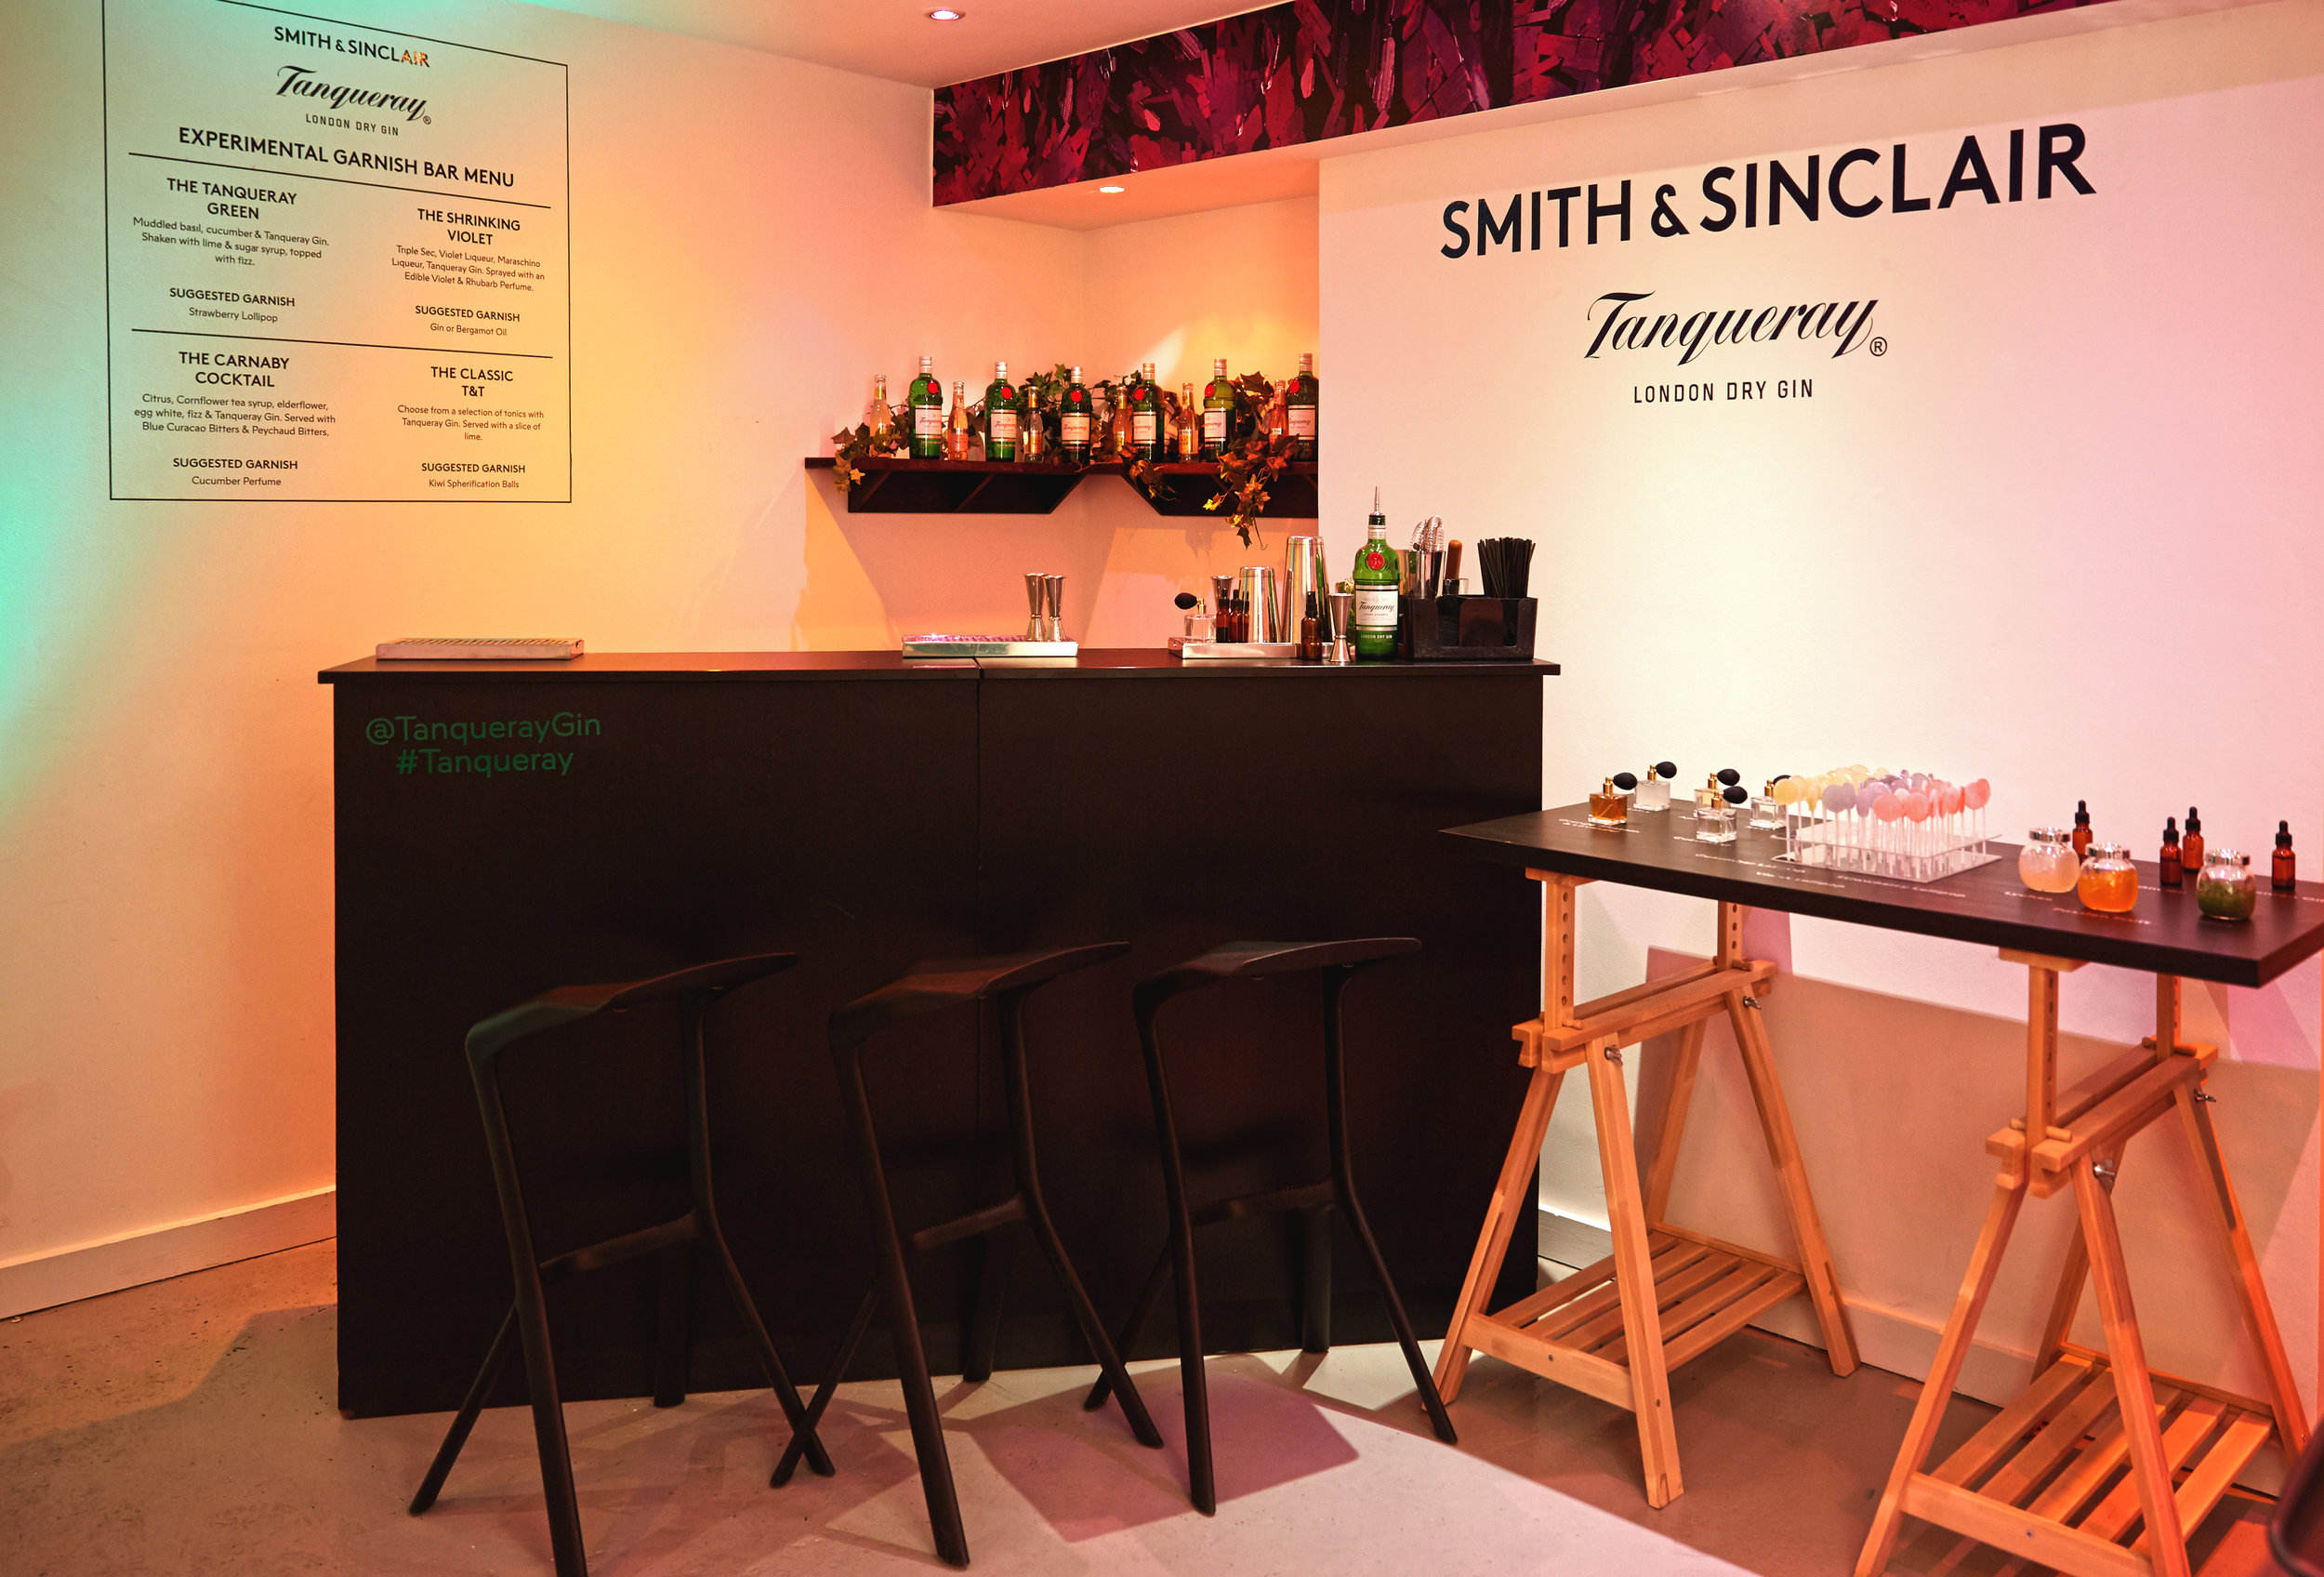 Smith & Sinclair - The Flavour Rooms, Carnaby